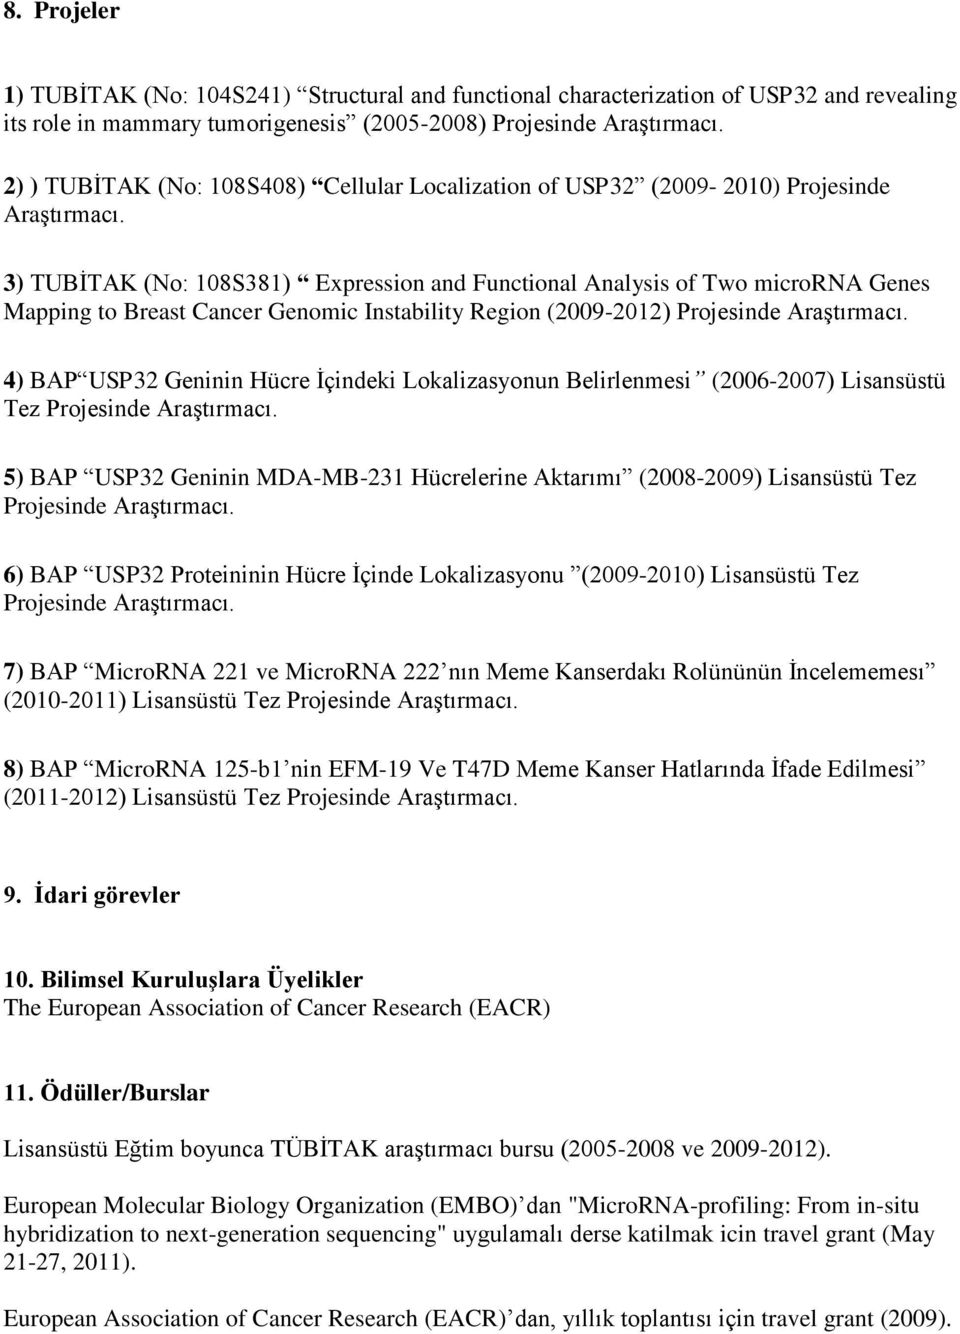 3) TUBİTAK (No: 108S381) Expression and Functional Analysis of Two microrna Genes Mapping to Breast Cancer Genomic Instability Region (2009-2012) Projesinde Araştırmacı.